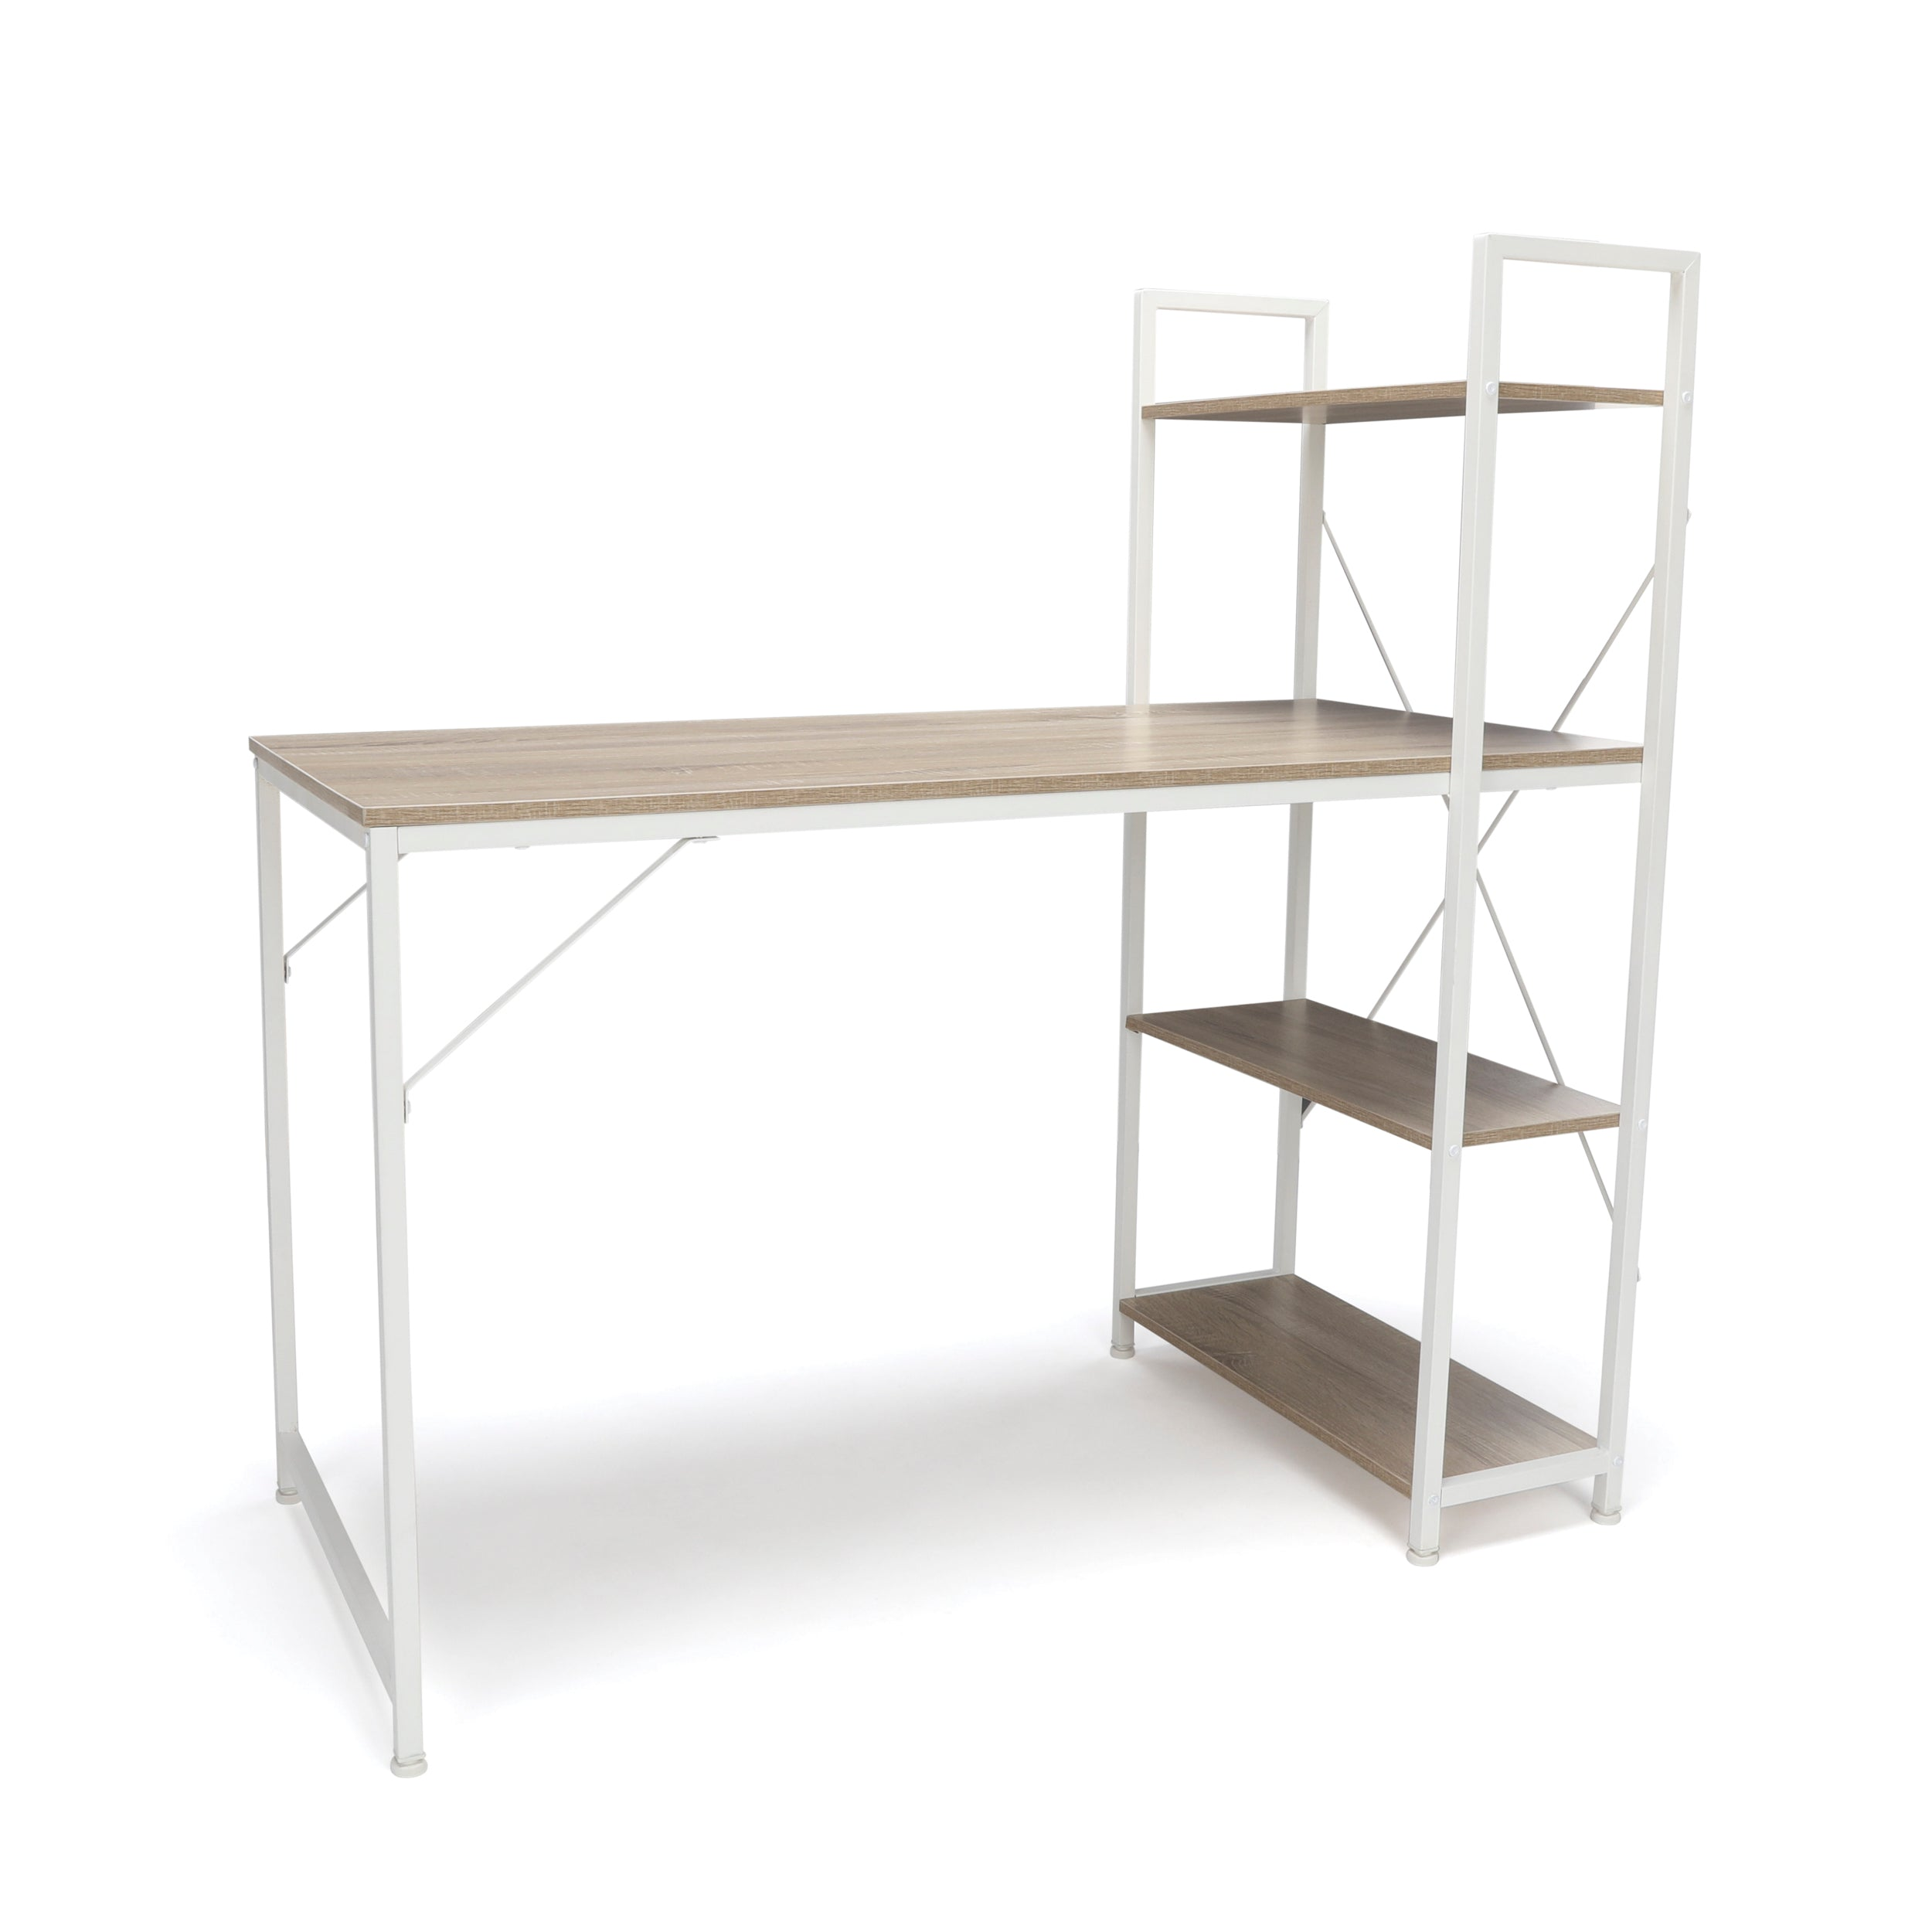 Ofminc Model ESS-1004 Essentials Combination Desk 4 Shelf Unit